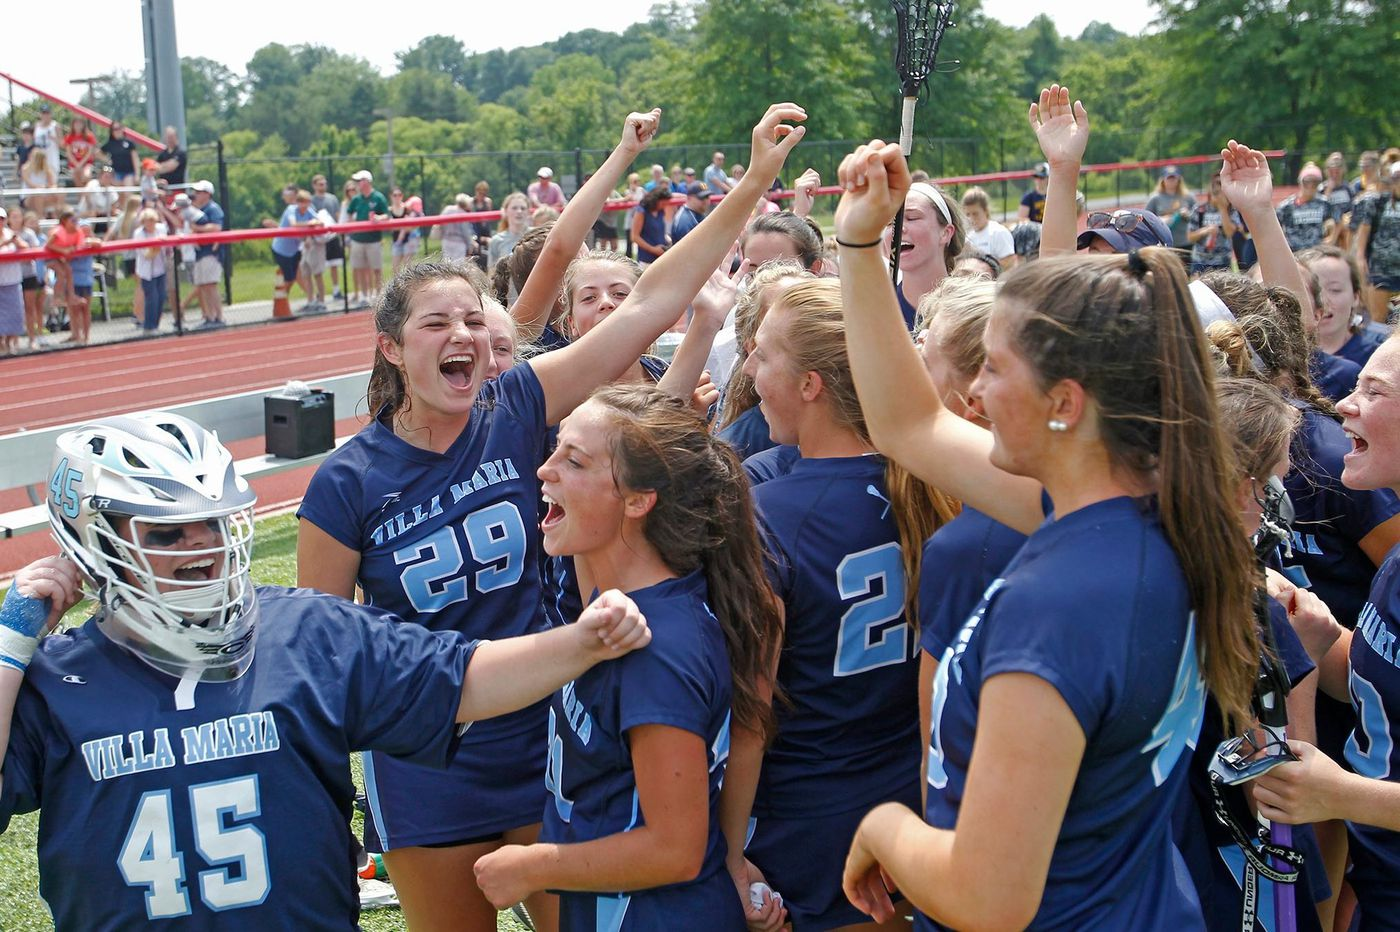 Tuesday's Southeastern Pa. roundup: Danny Mallee's double OT goal lifts the La Salle lacrosse team past Garnet Valley in PIAA Class 3A playoffs